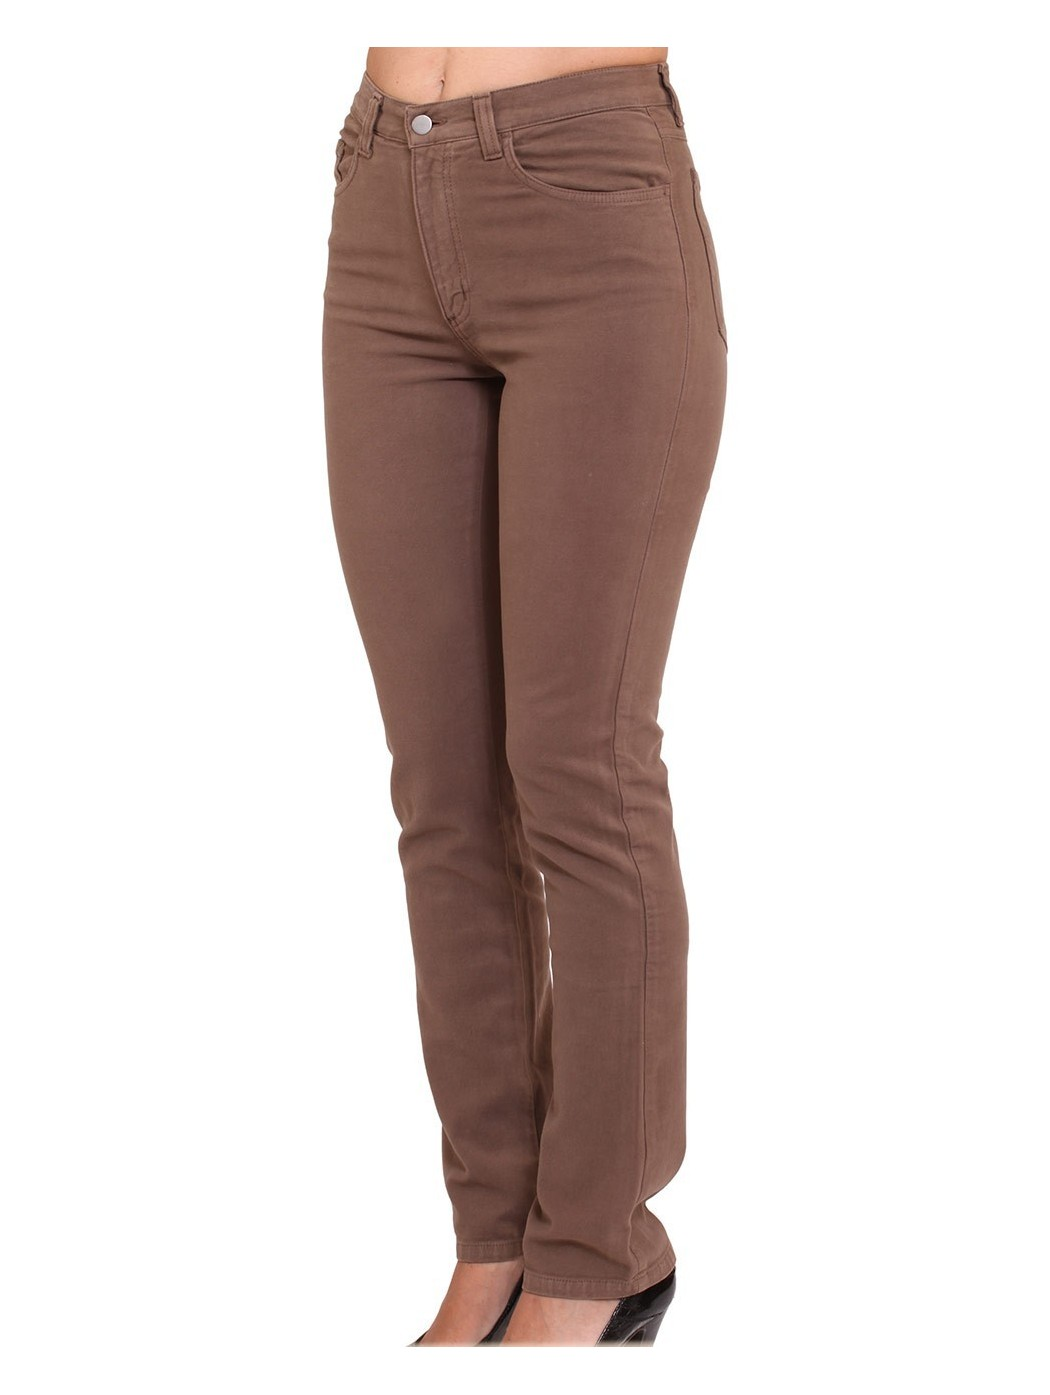 Musetti trousers